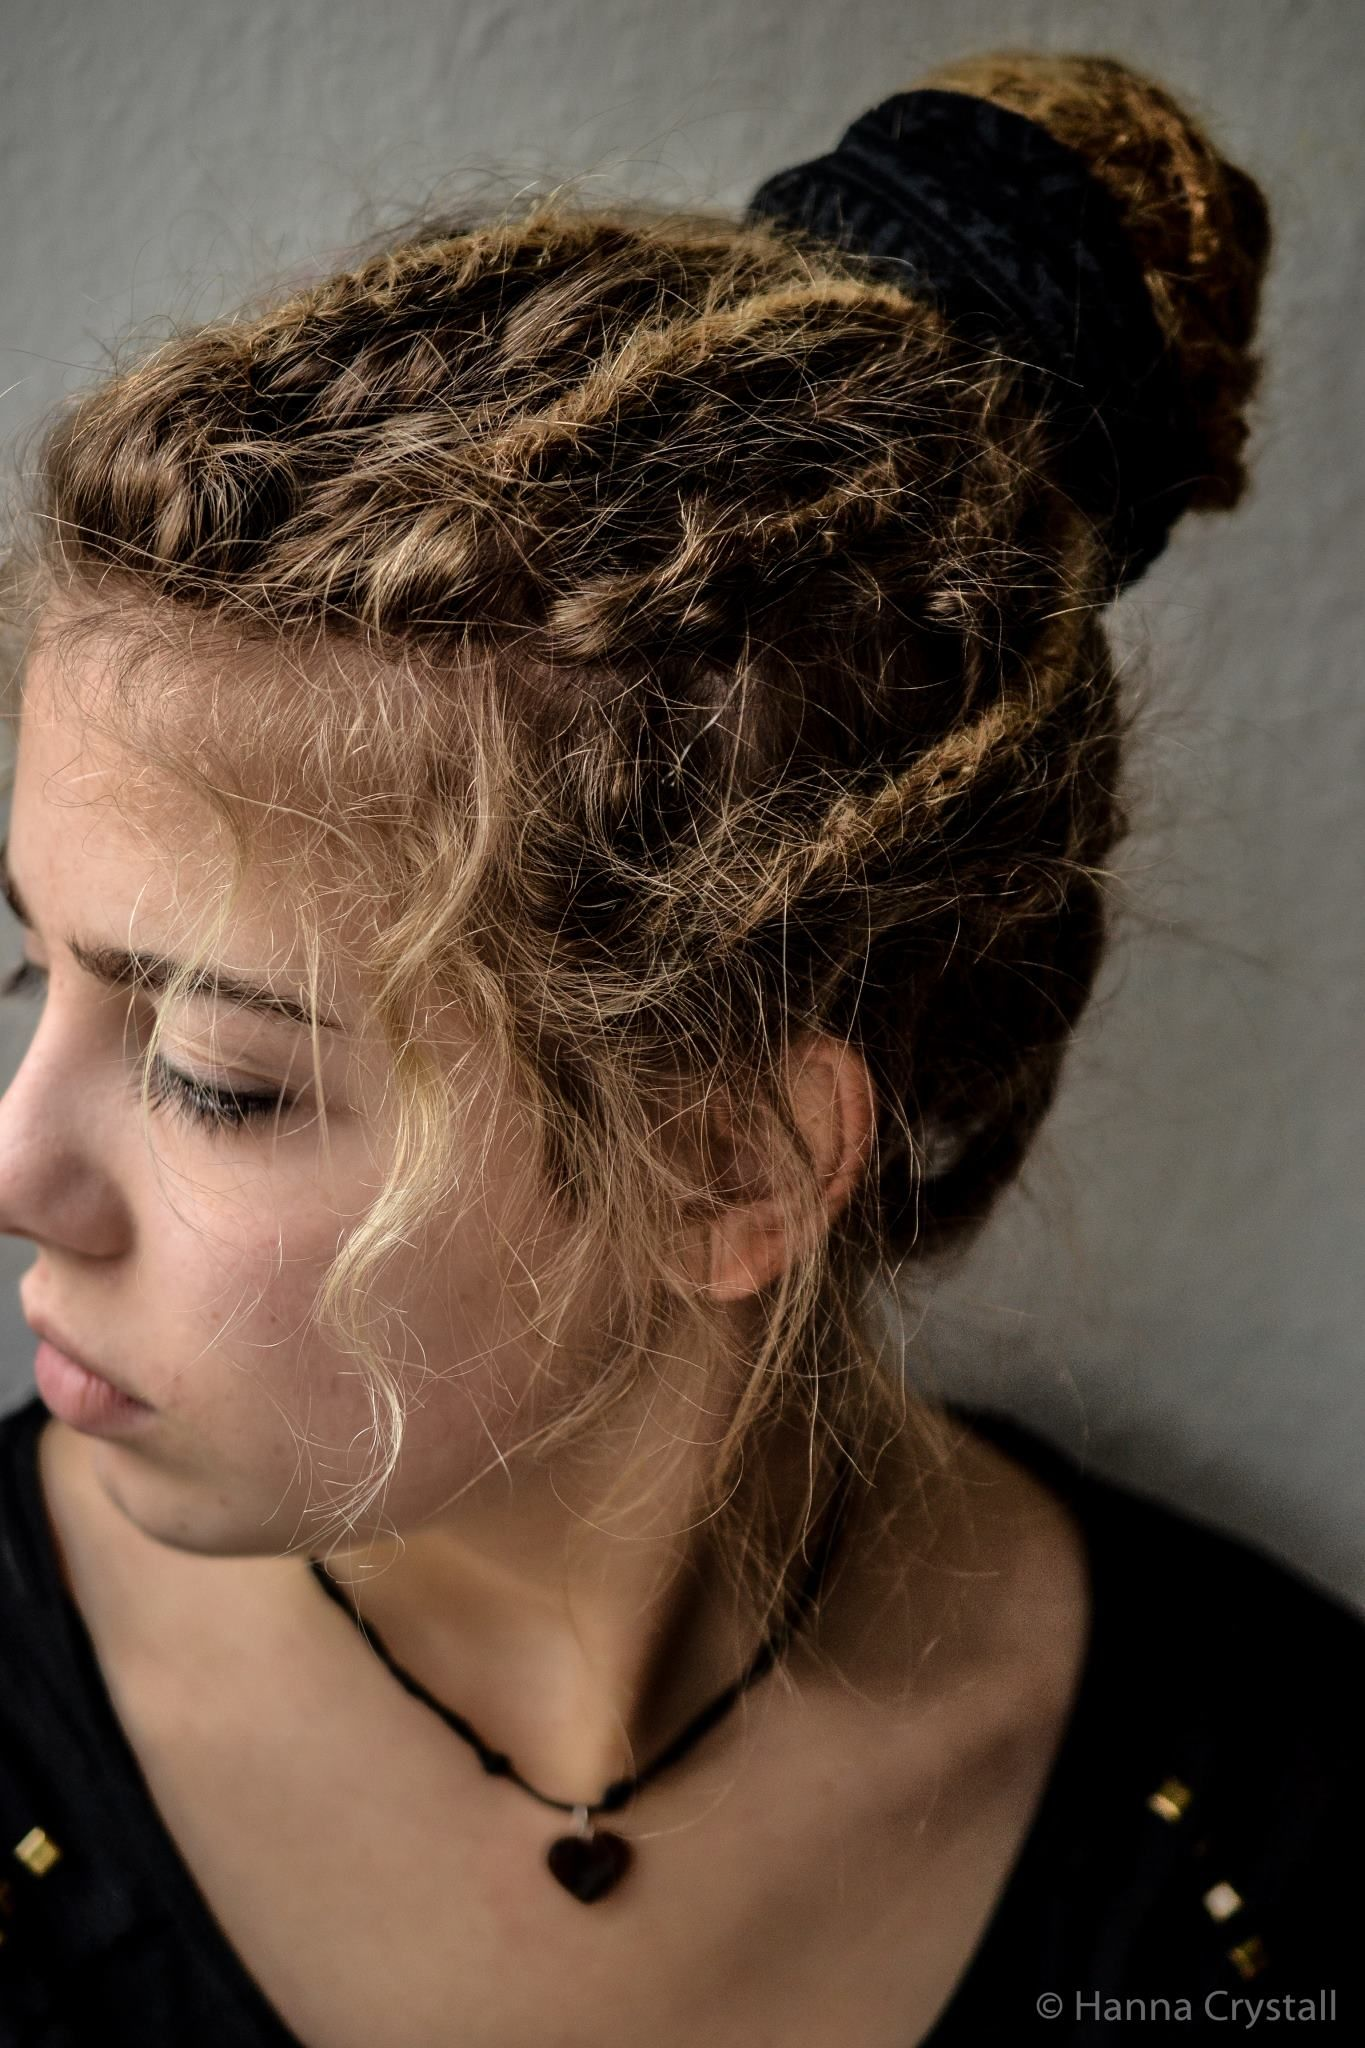 Dreads styles for white girls pretty white girls with dreads dreads styles for white girls pretty white girls with dreads dreadz pinterest pretty white girls dreads styles and dreads biocorpaavc Image collections